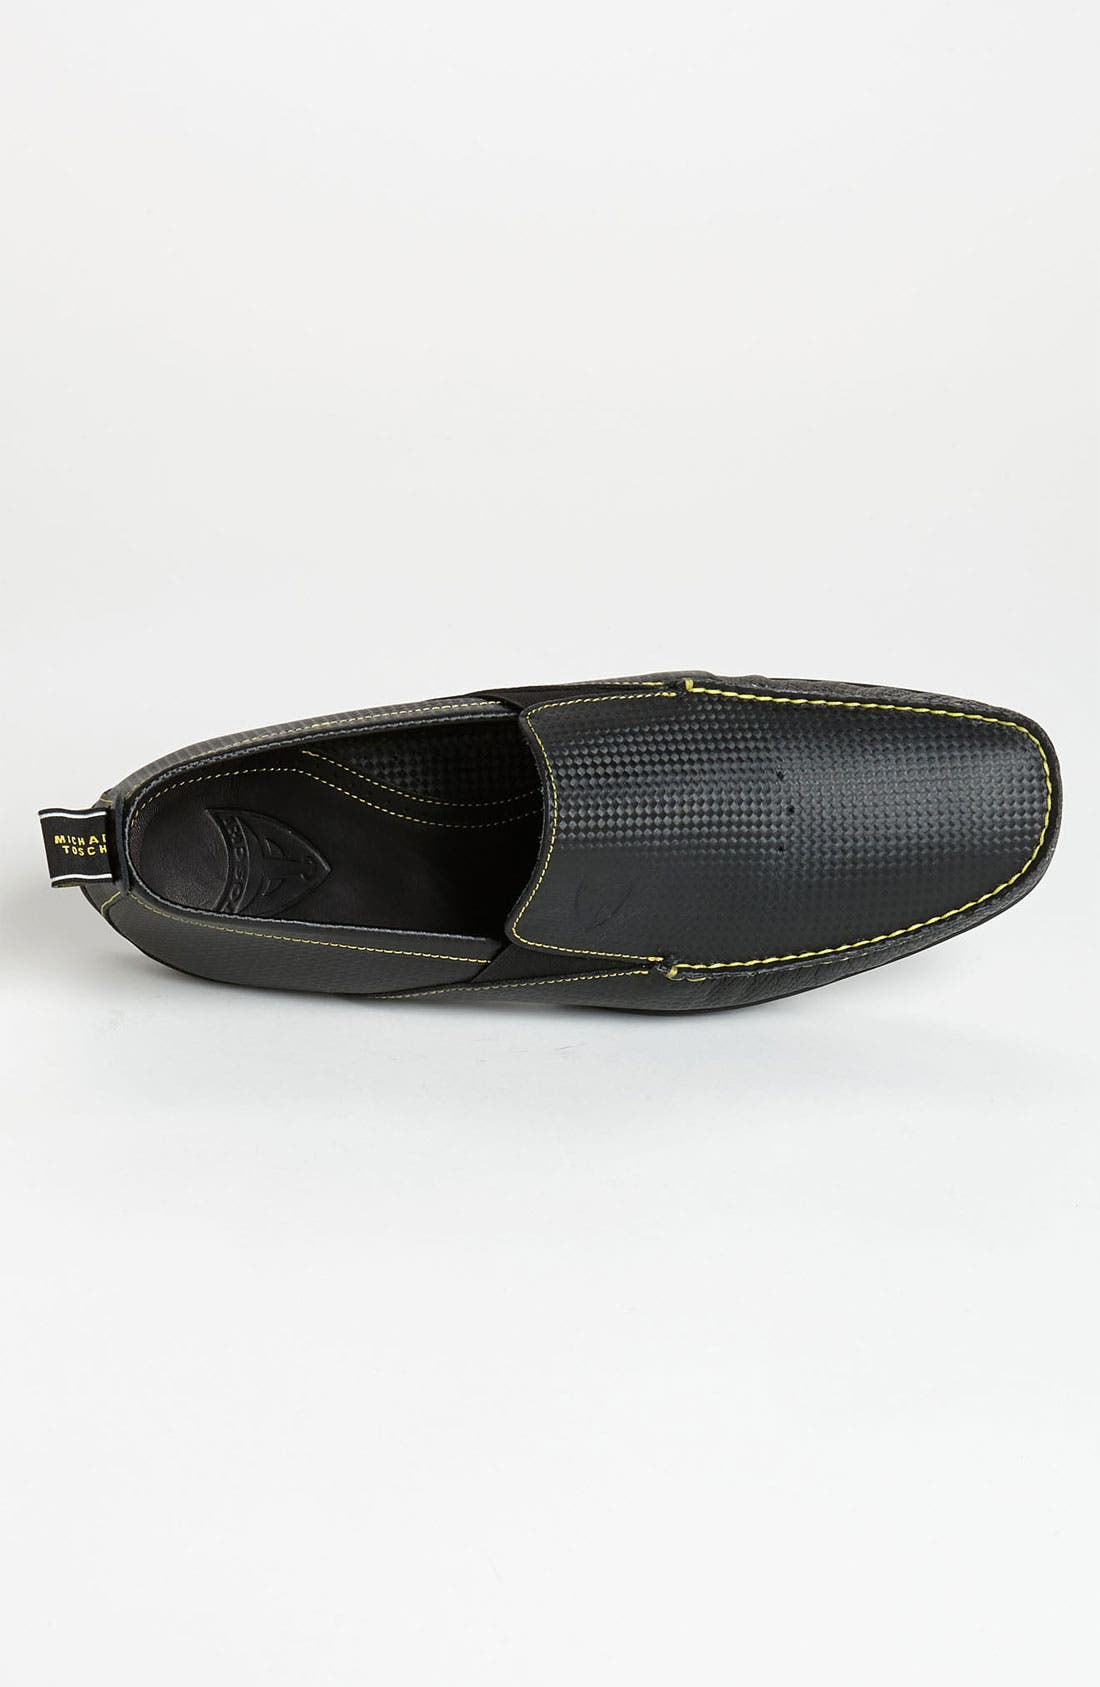 Alternate Image 3  - Michael Toschi 'Onda' Low Profile Shoe